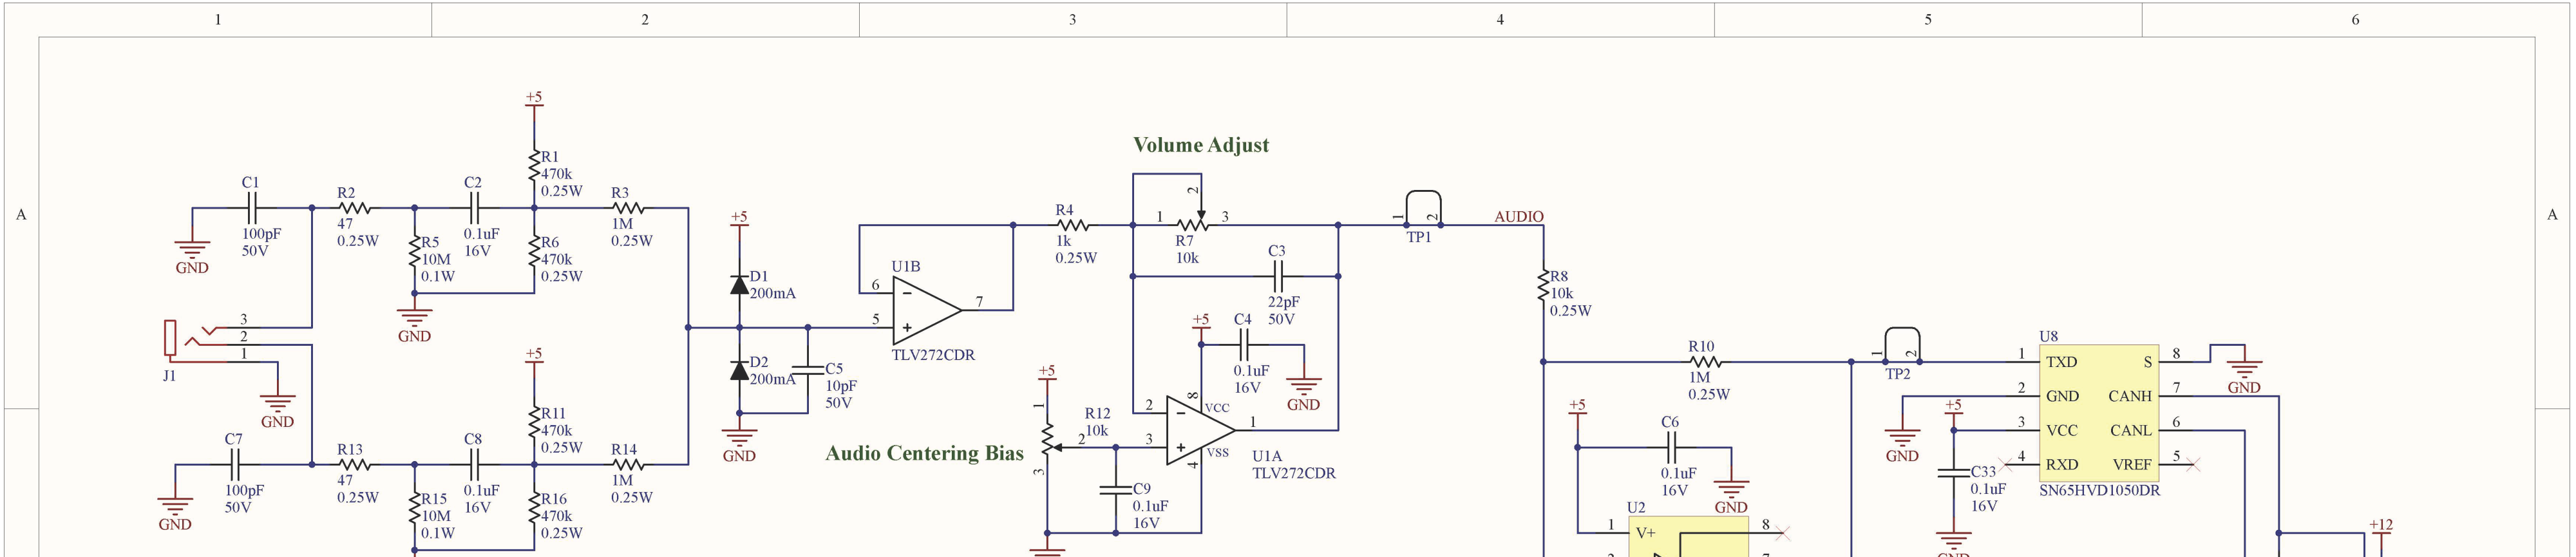 Detailed schematic 1 of 2 for my tesla coil audio driver (click for full image)